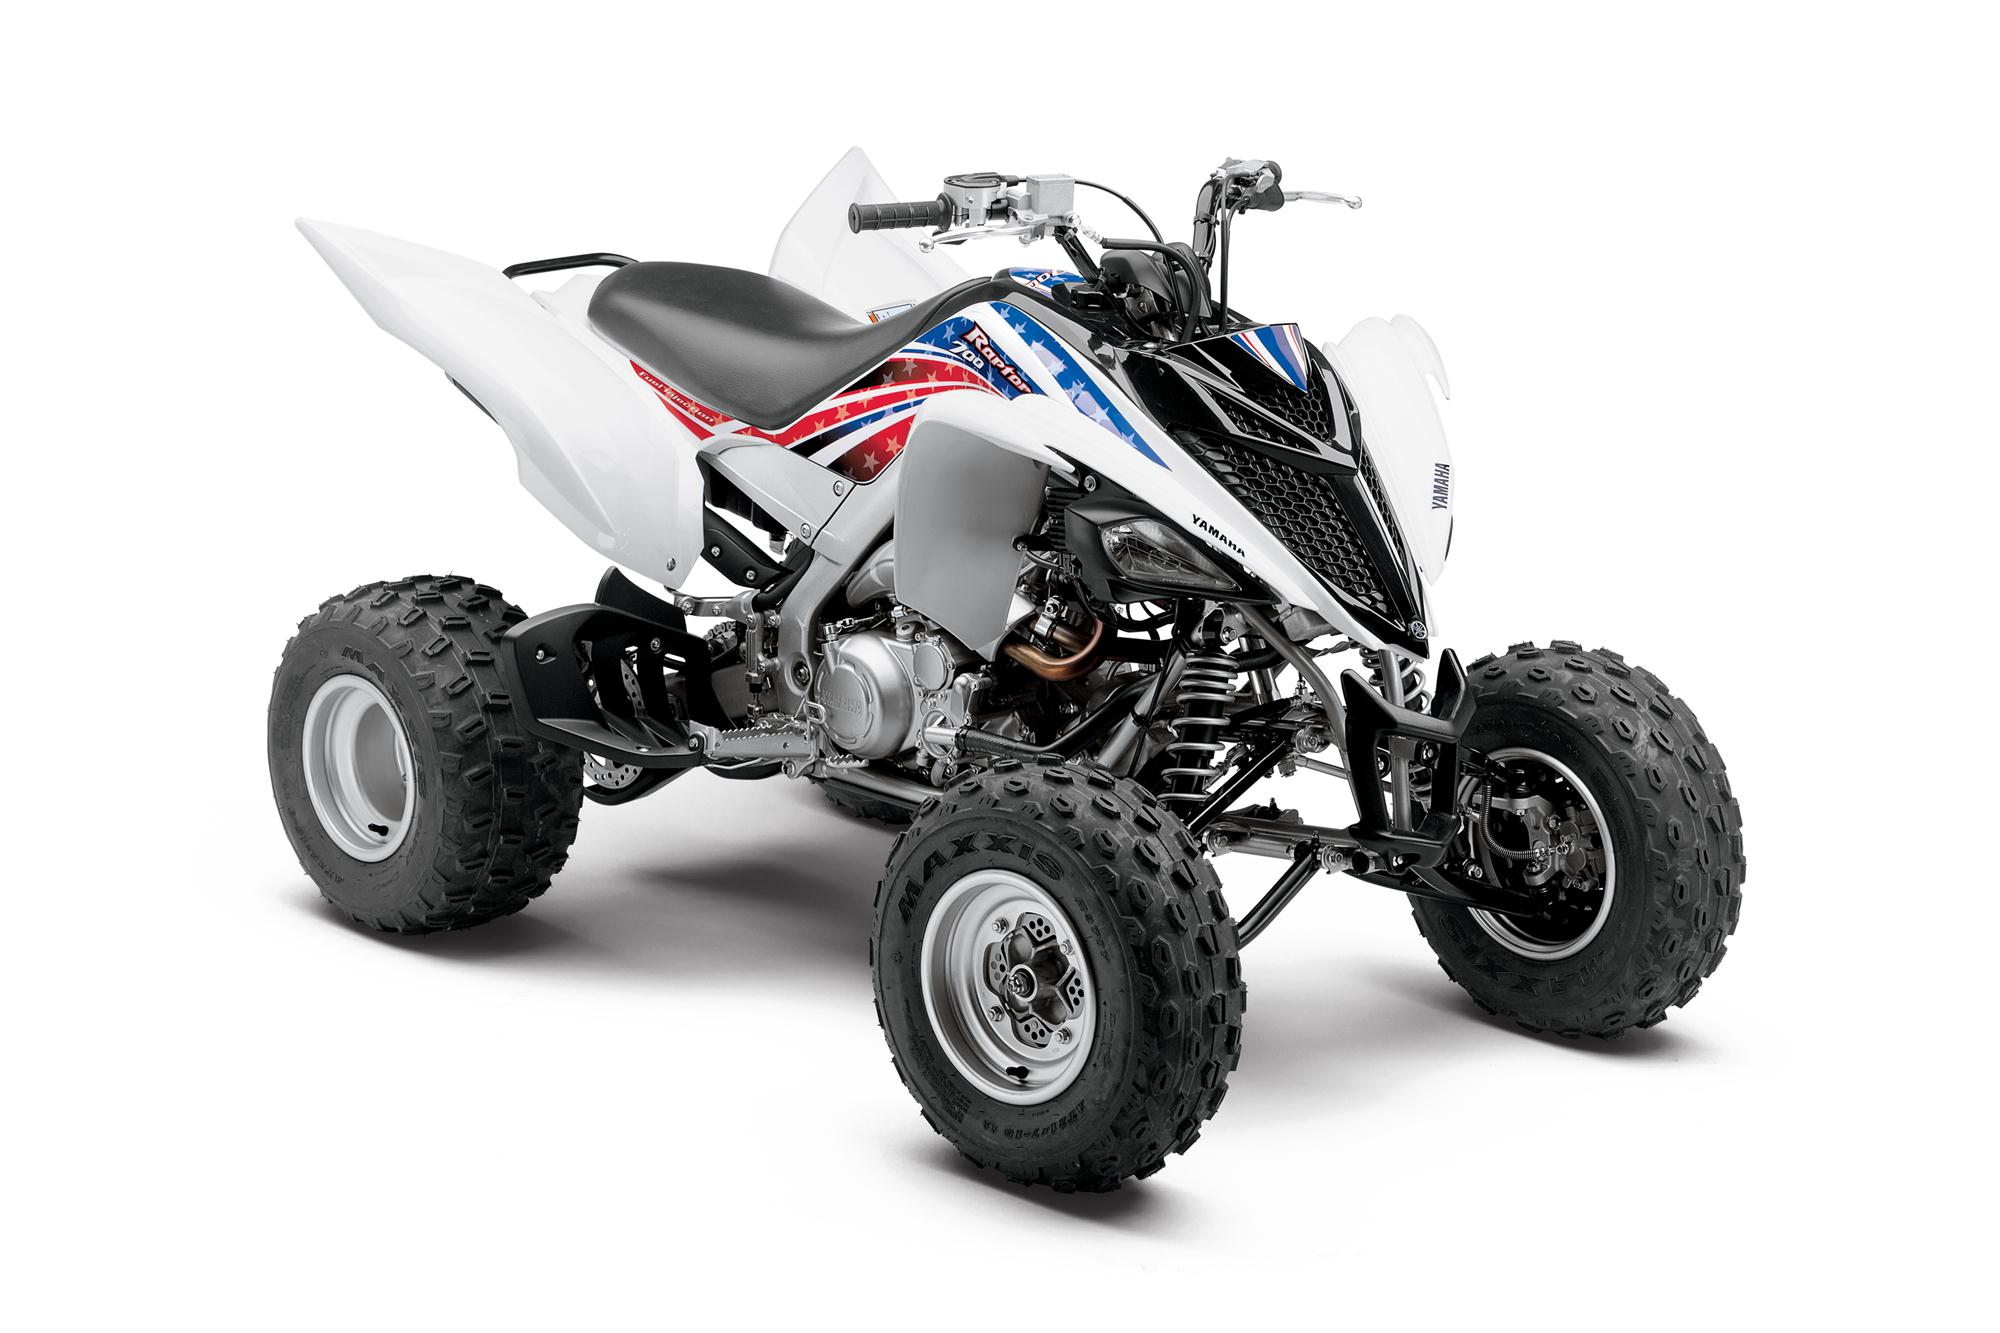 2013 yamaha raptor 700 the big engine quad autoevolution. Black Bedroom Furniture Sets. Home Design Ideas